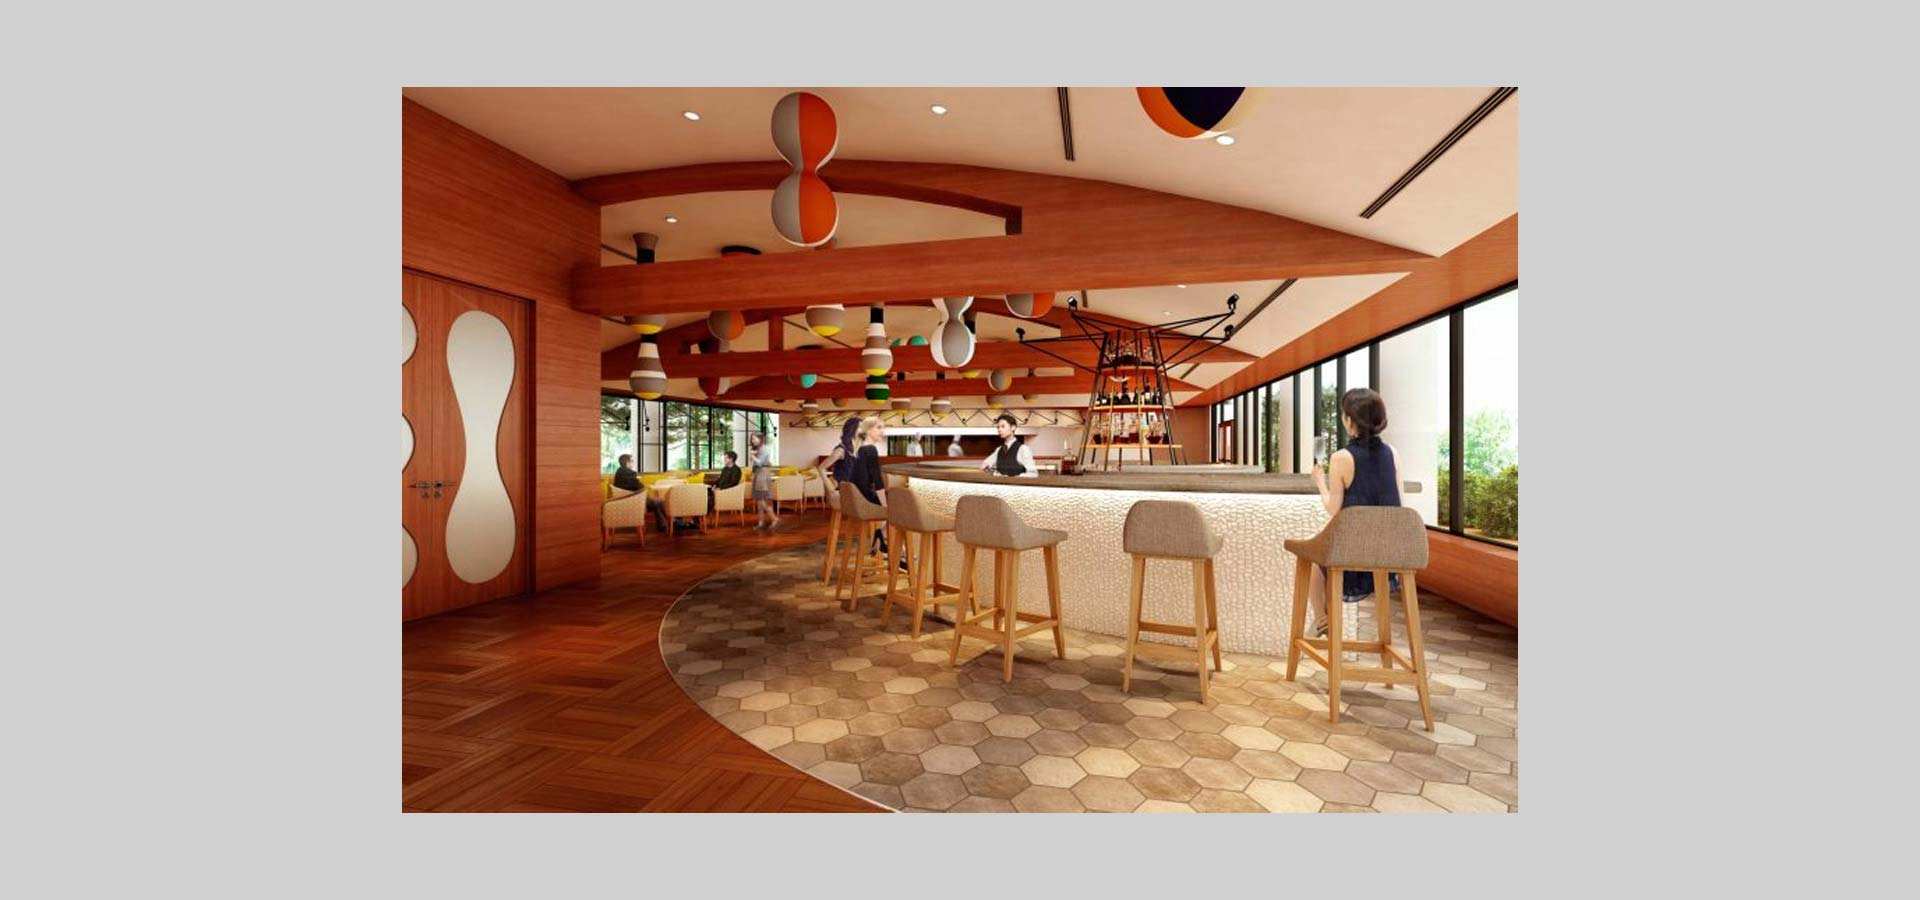 Karuizawa Prince Hotel East will be closed for renovation